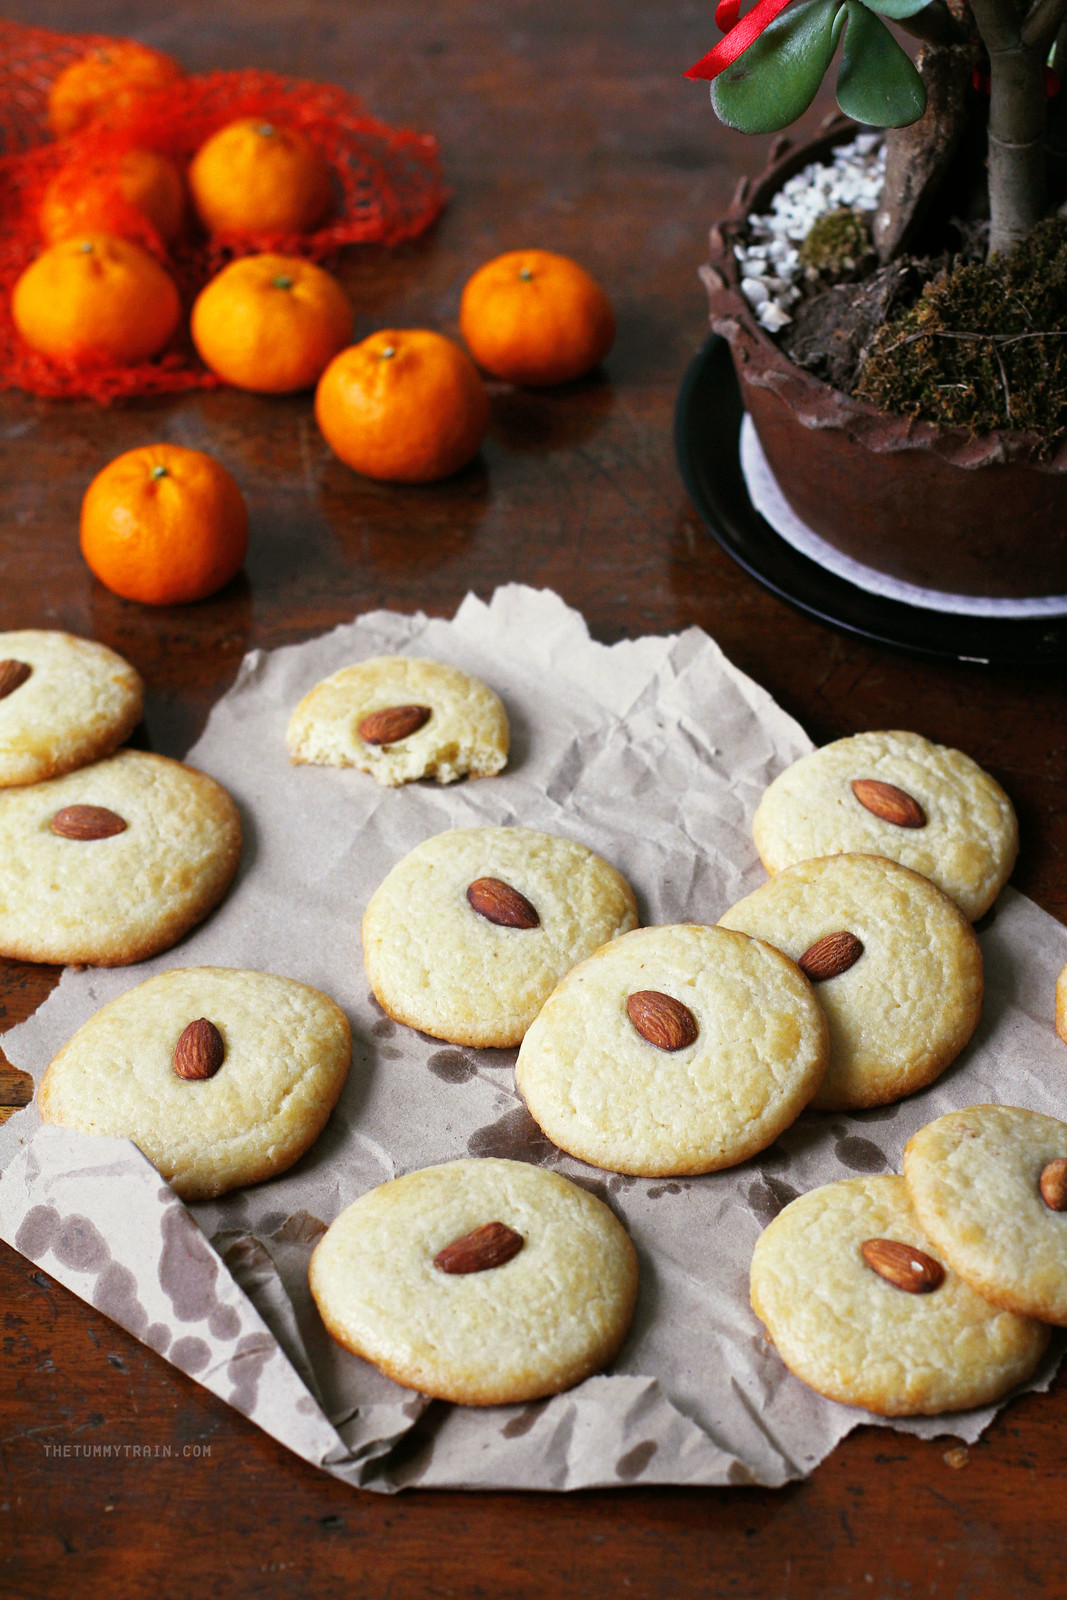 24756025742 4614544d5d h - Celebrating with these Lunar New Year Almond Cookies